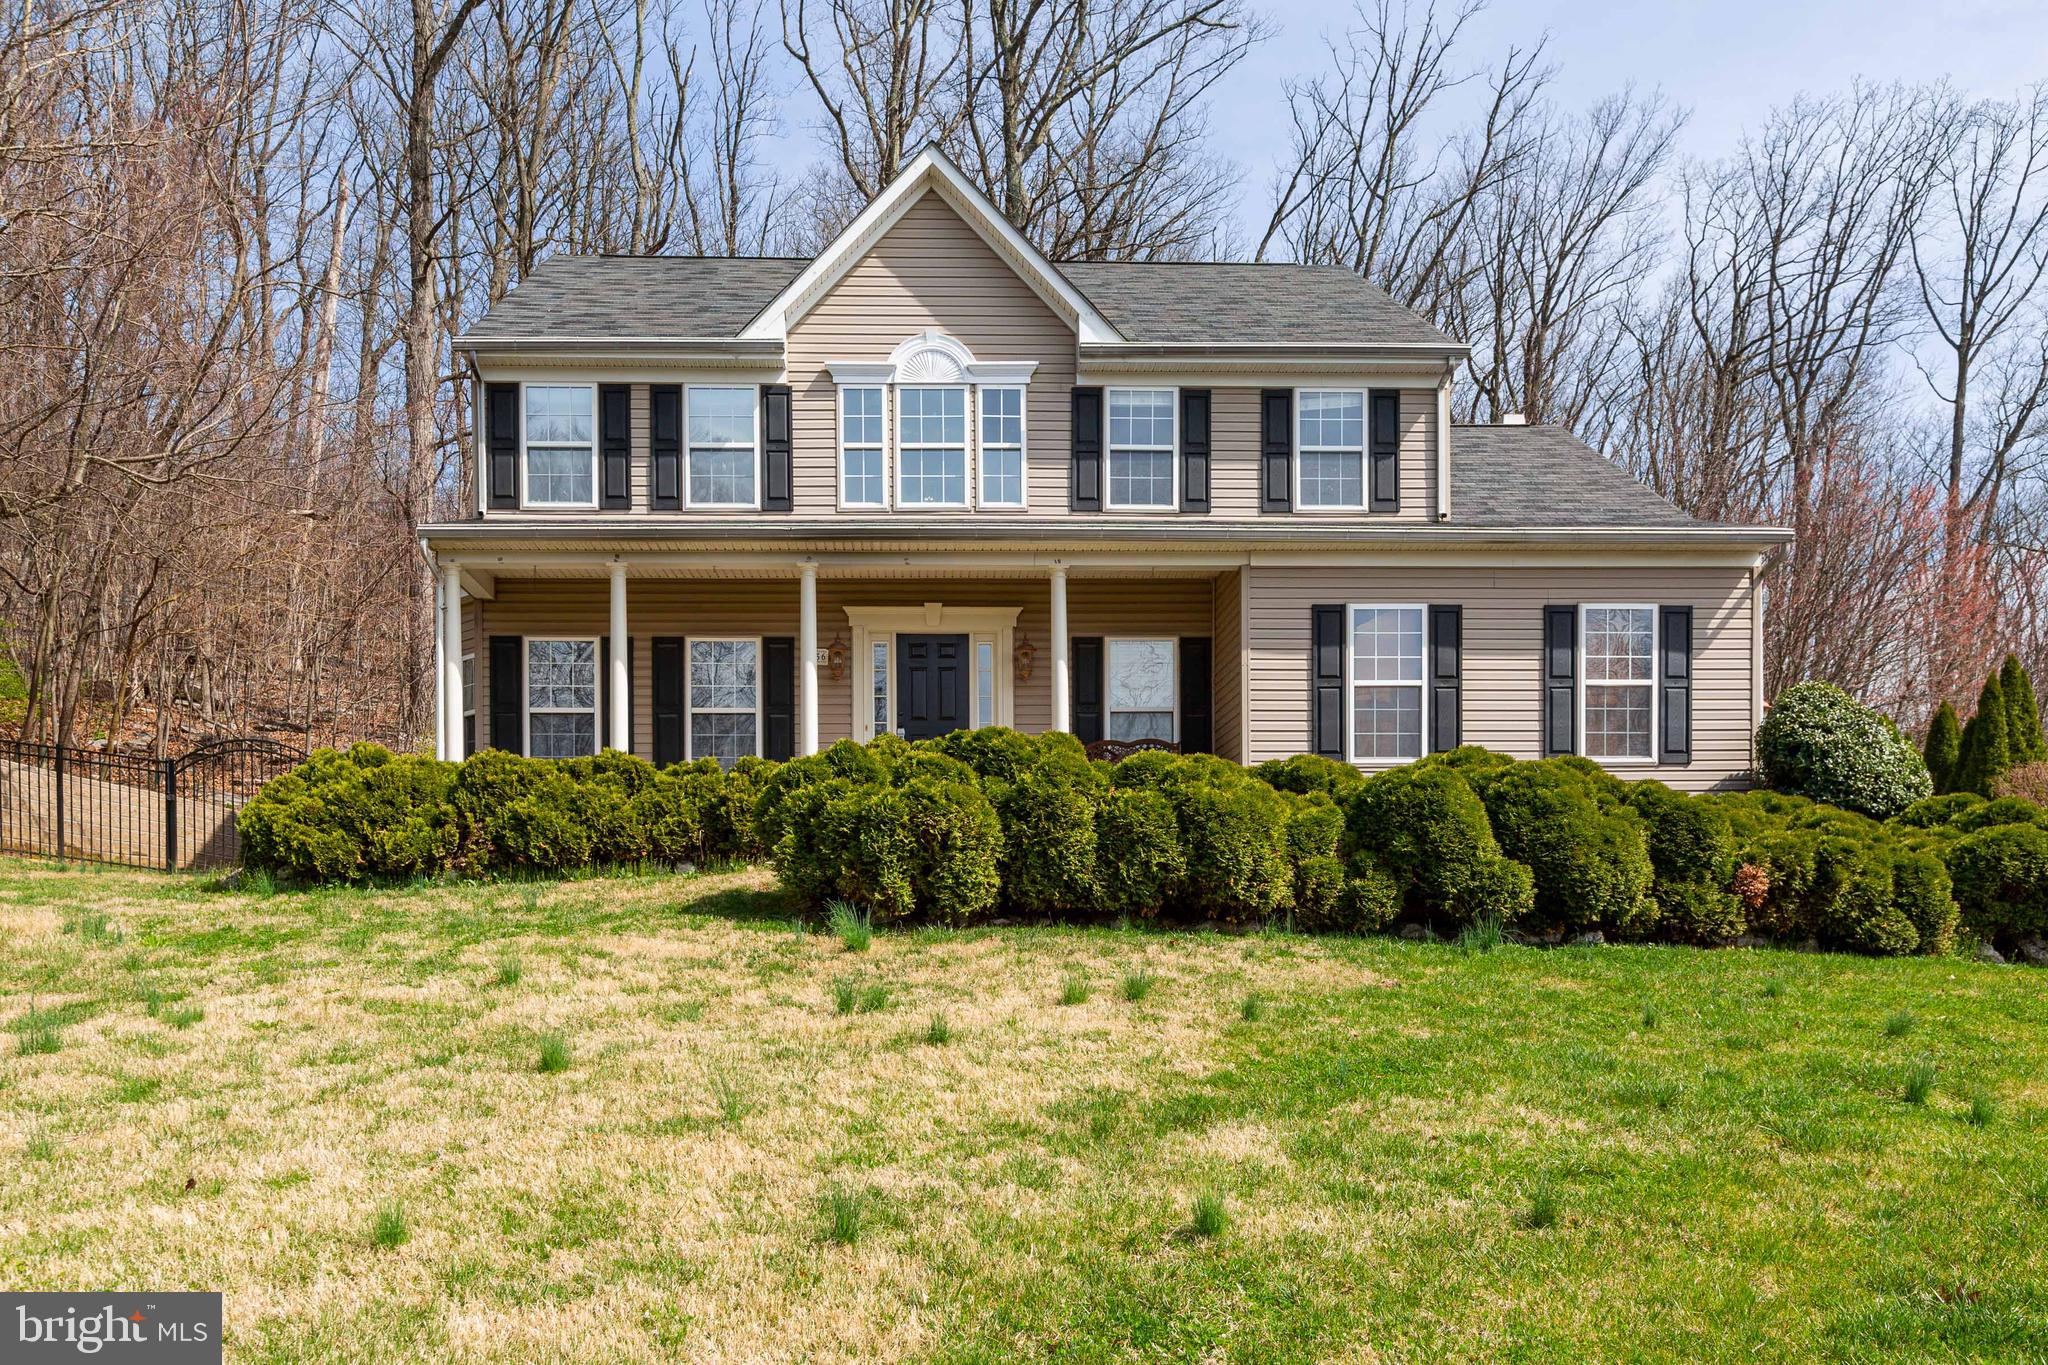 4656 OLD SWIMMING POOL ROAD, BRADDOCK HEIGHTS, MD 21714